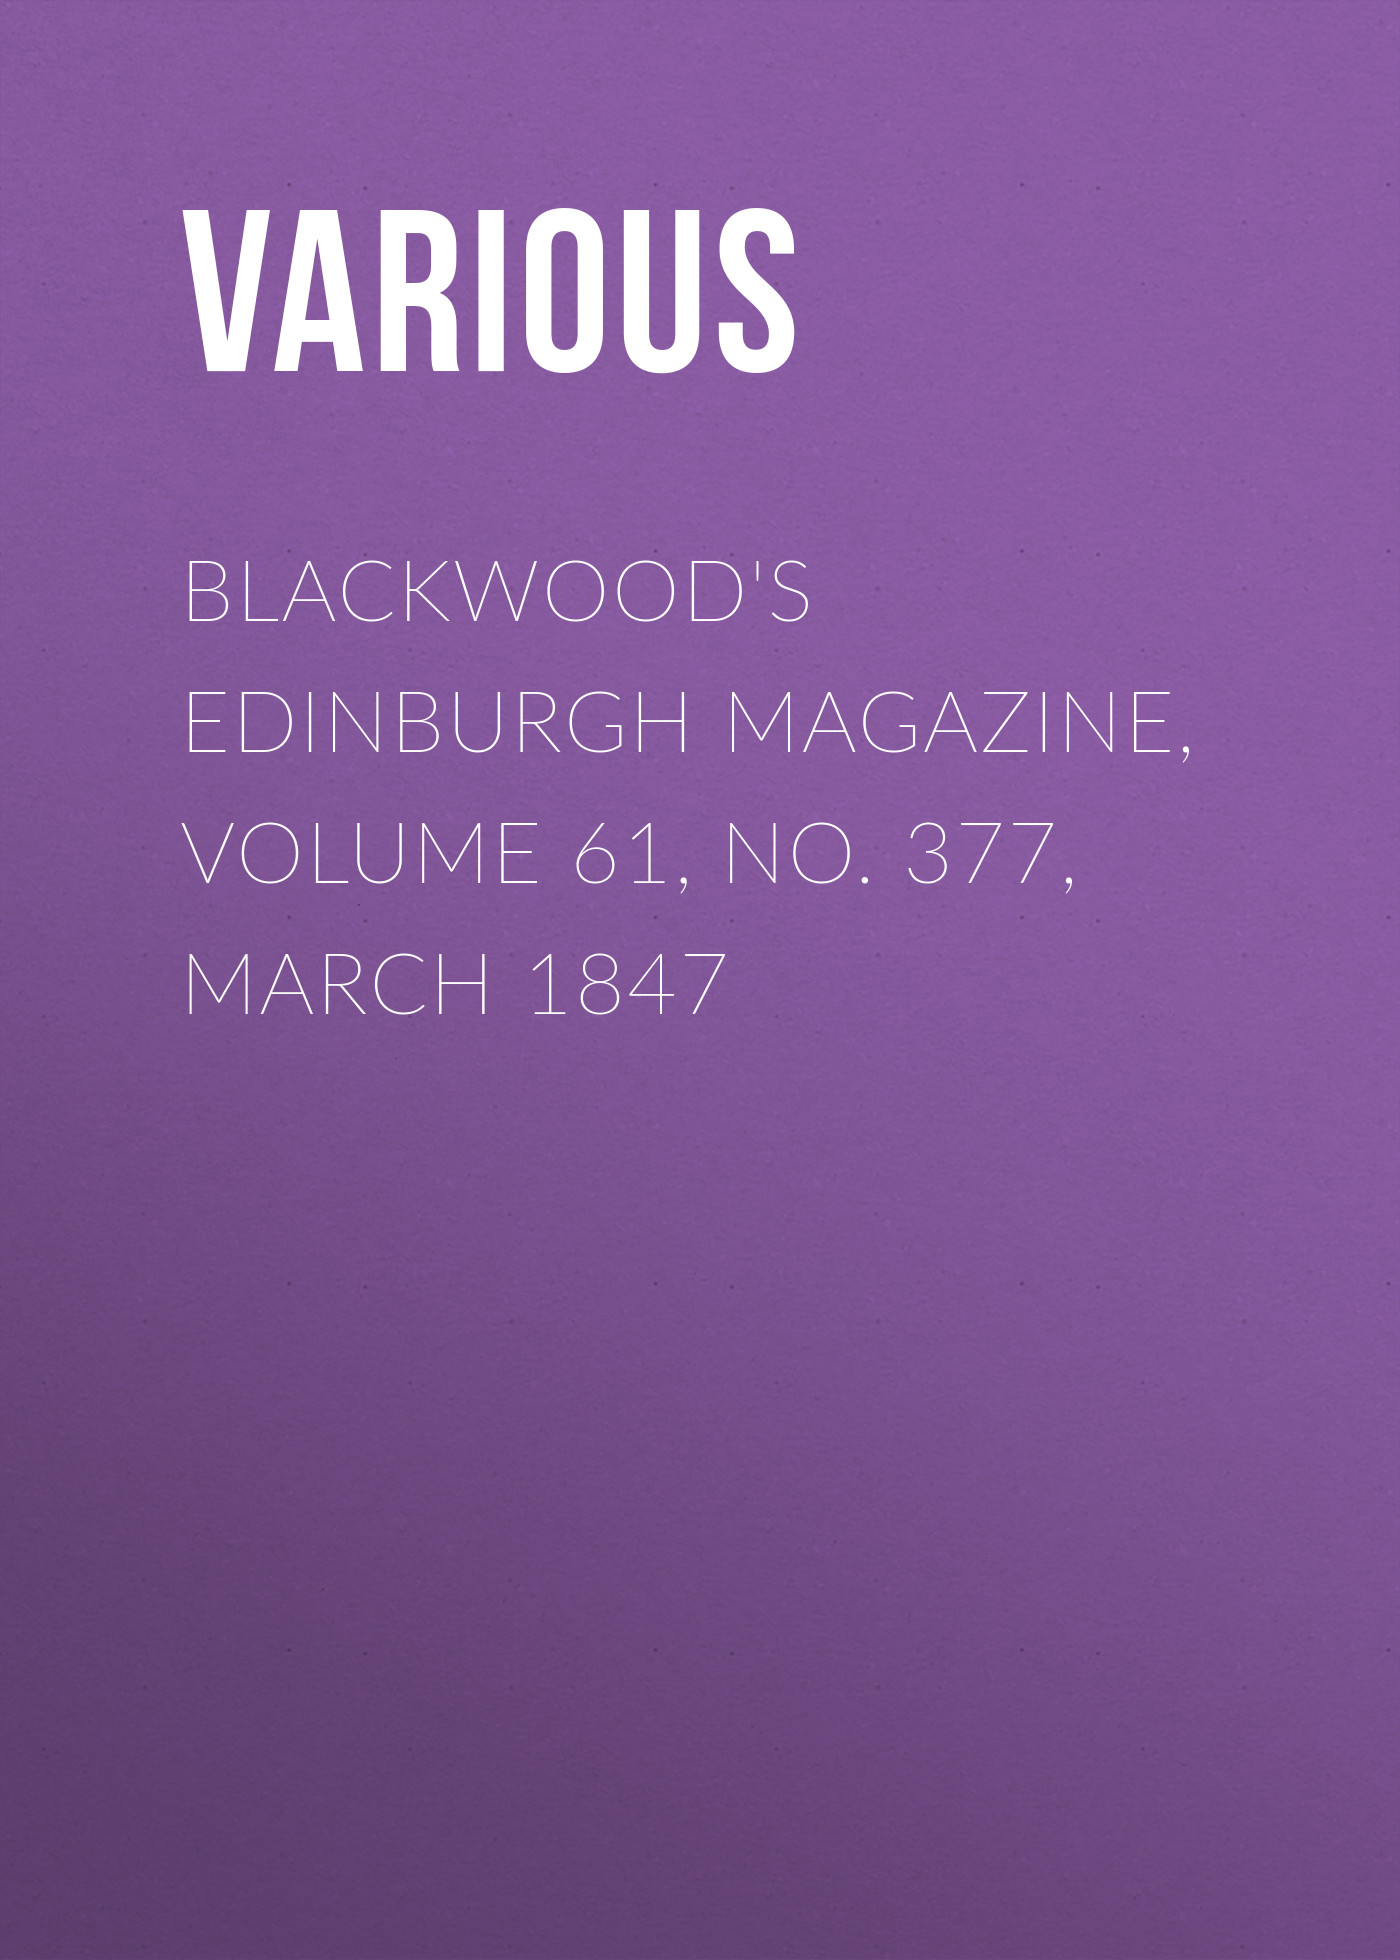 Various Blackwood's Edinburgh Magazine, Volume 61, No. 377, March 1847